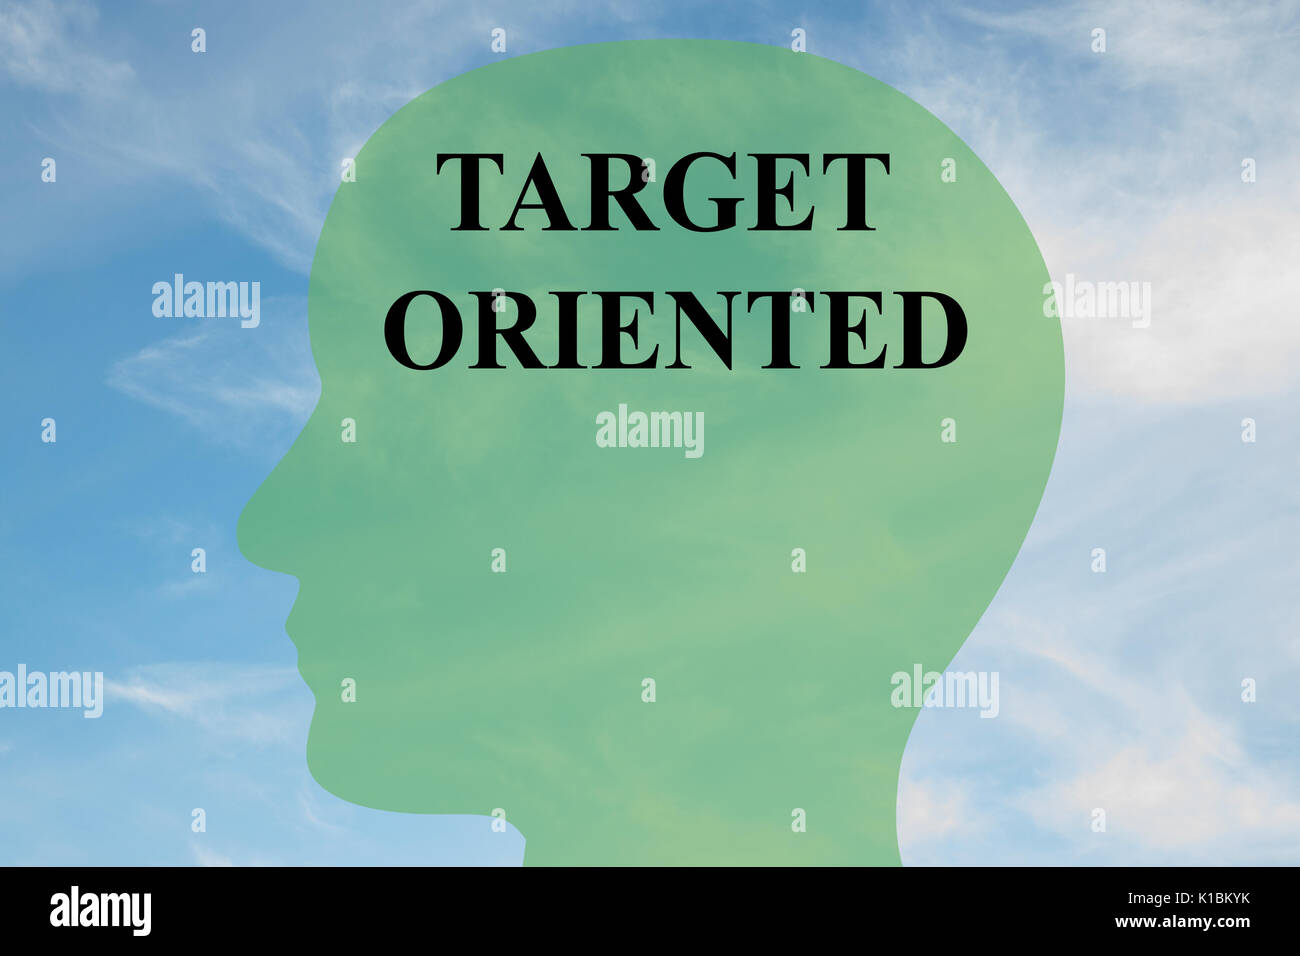 Render illustration of Target Oriented title on head silhouette, with cloudy sky as a background - Stock Image